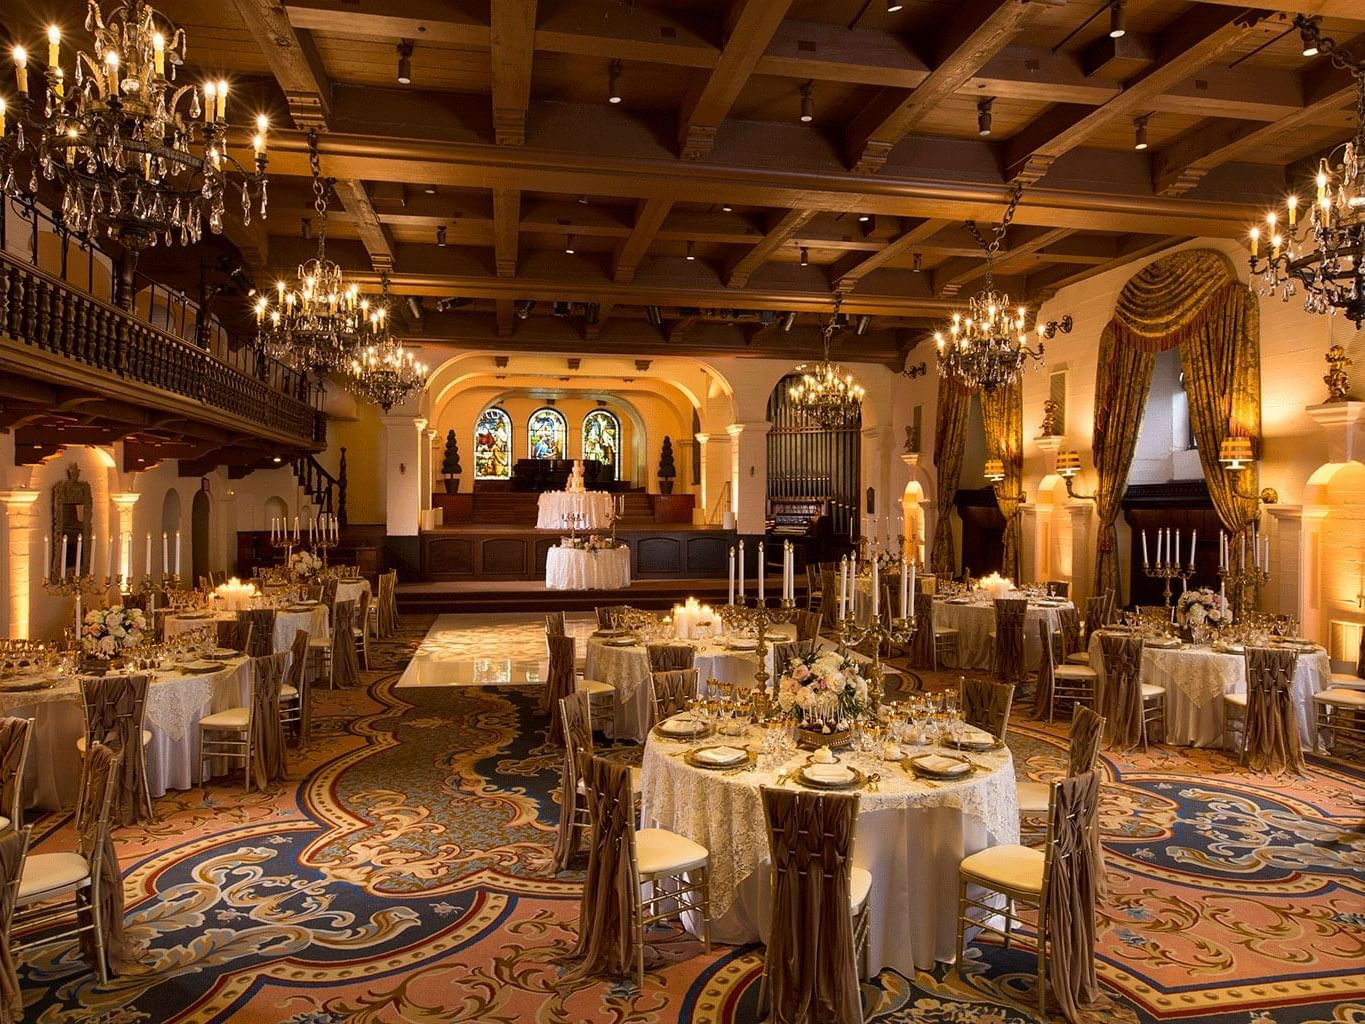 formal ballroom wotih elgantly decorated tables and chairs